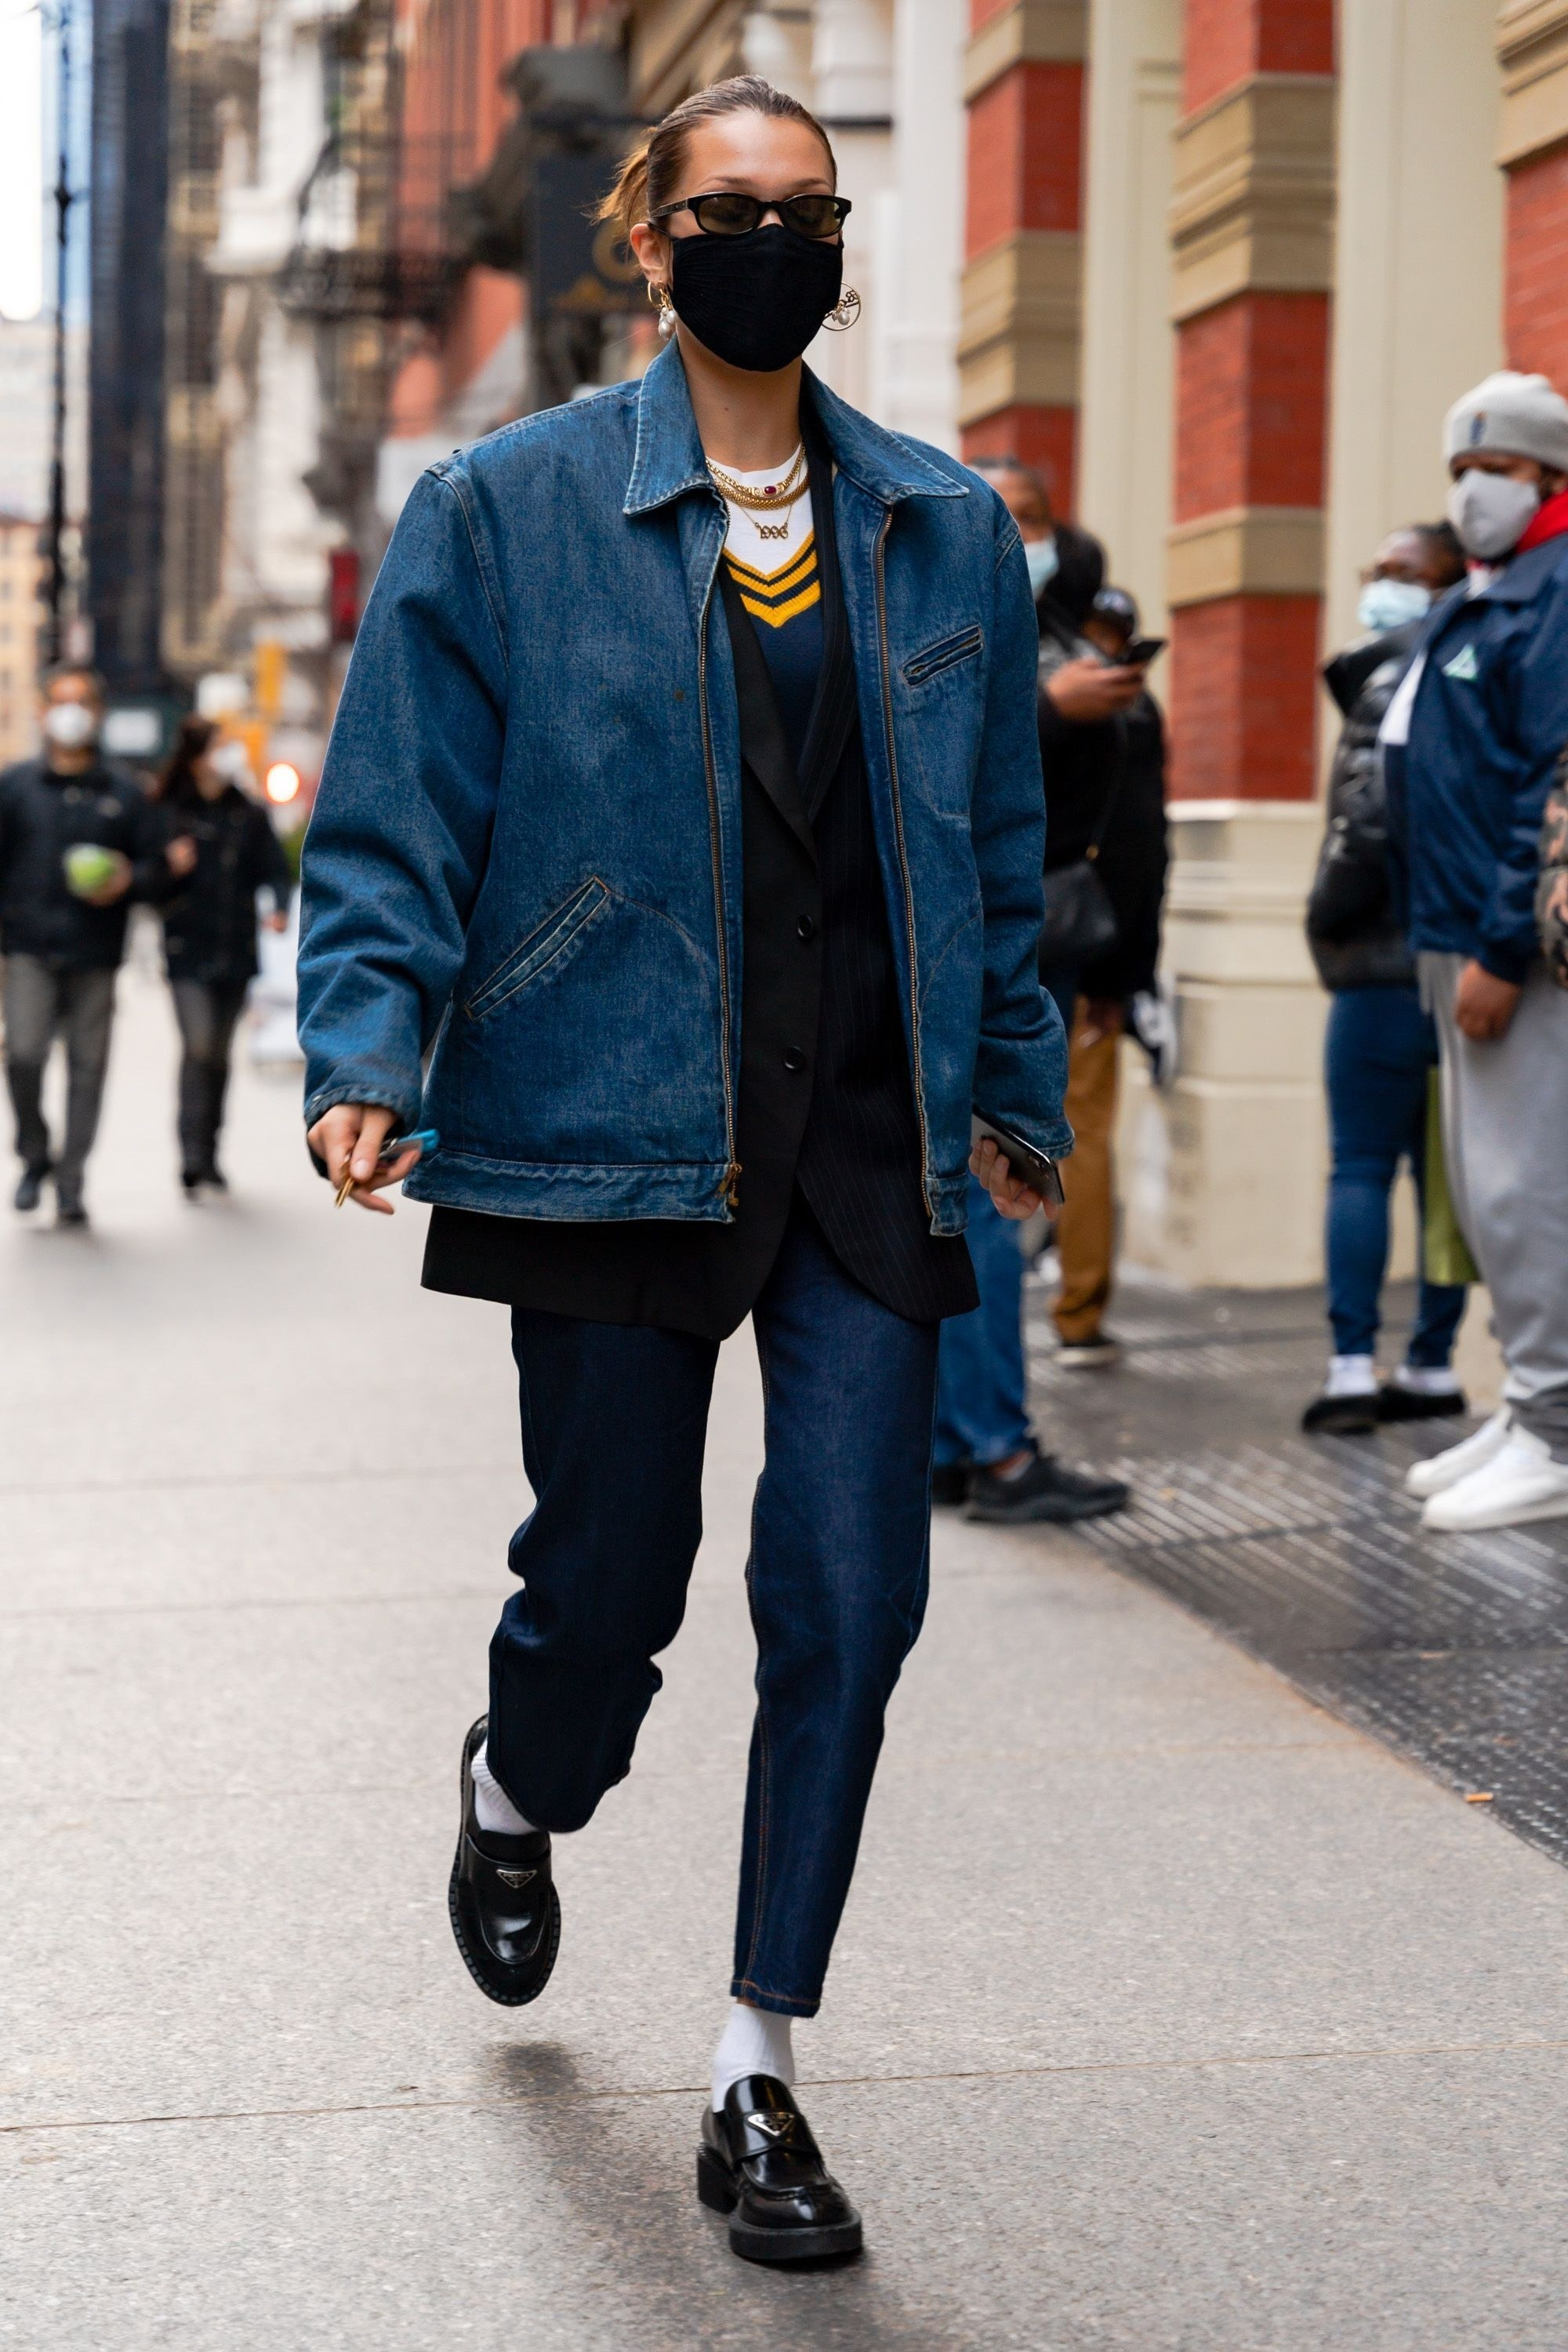 Bella Hadid in jeans, a sweater vest and an oversized jean jacket